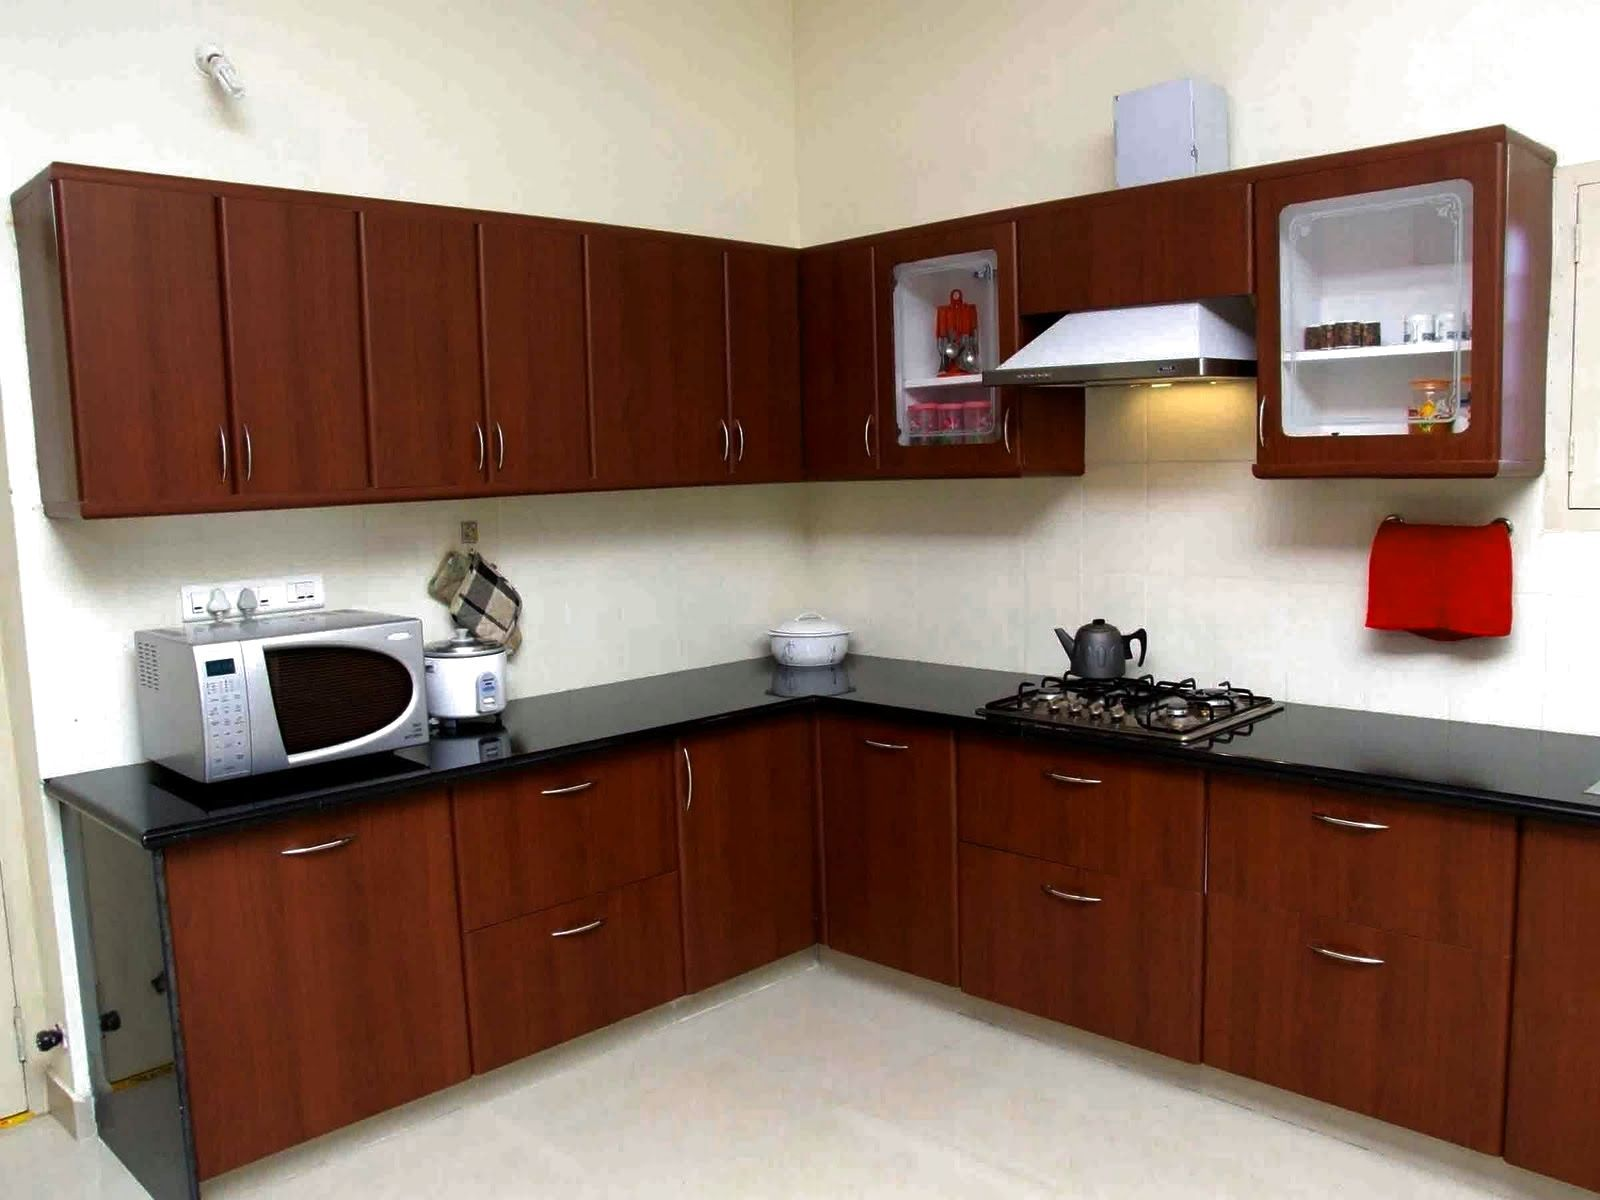 Design kitchen cabinets india ideas kitchen cabinet for Kitchenette design ideas